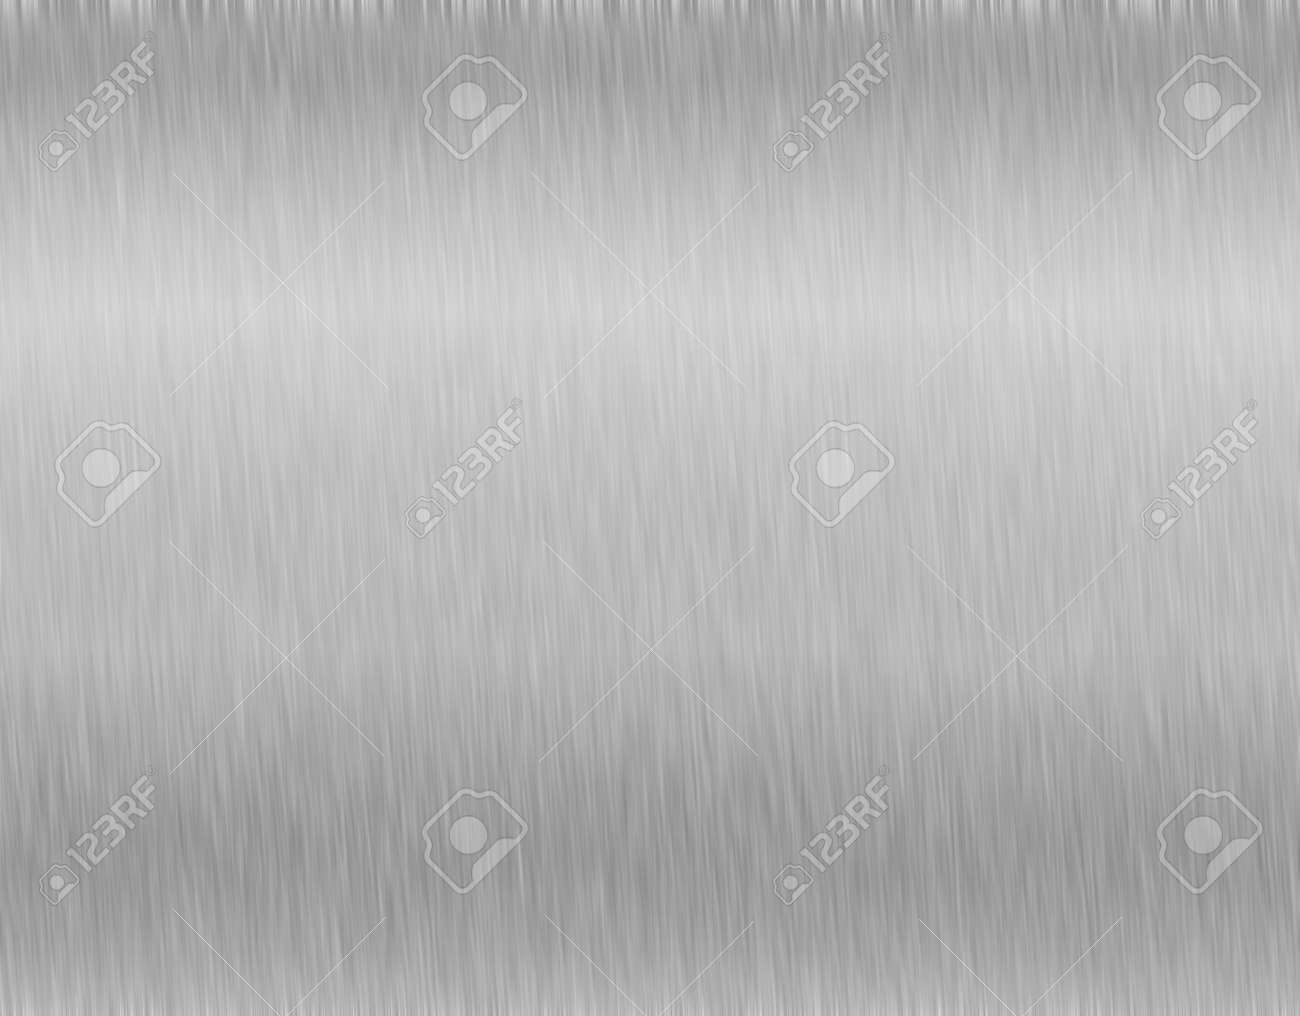 metal, stainless steel texture background with reflection - 133821901